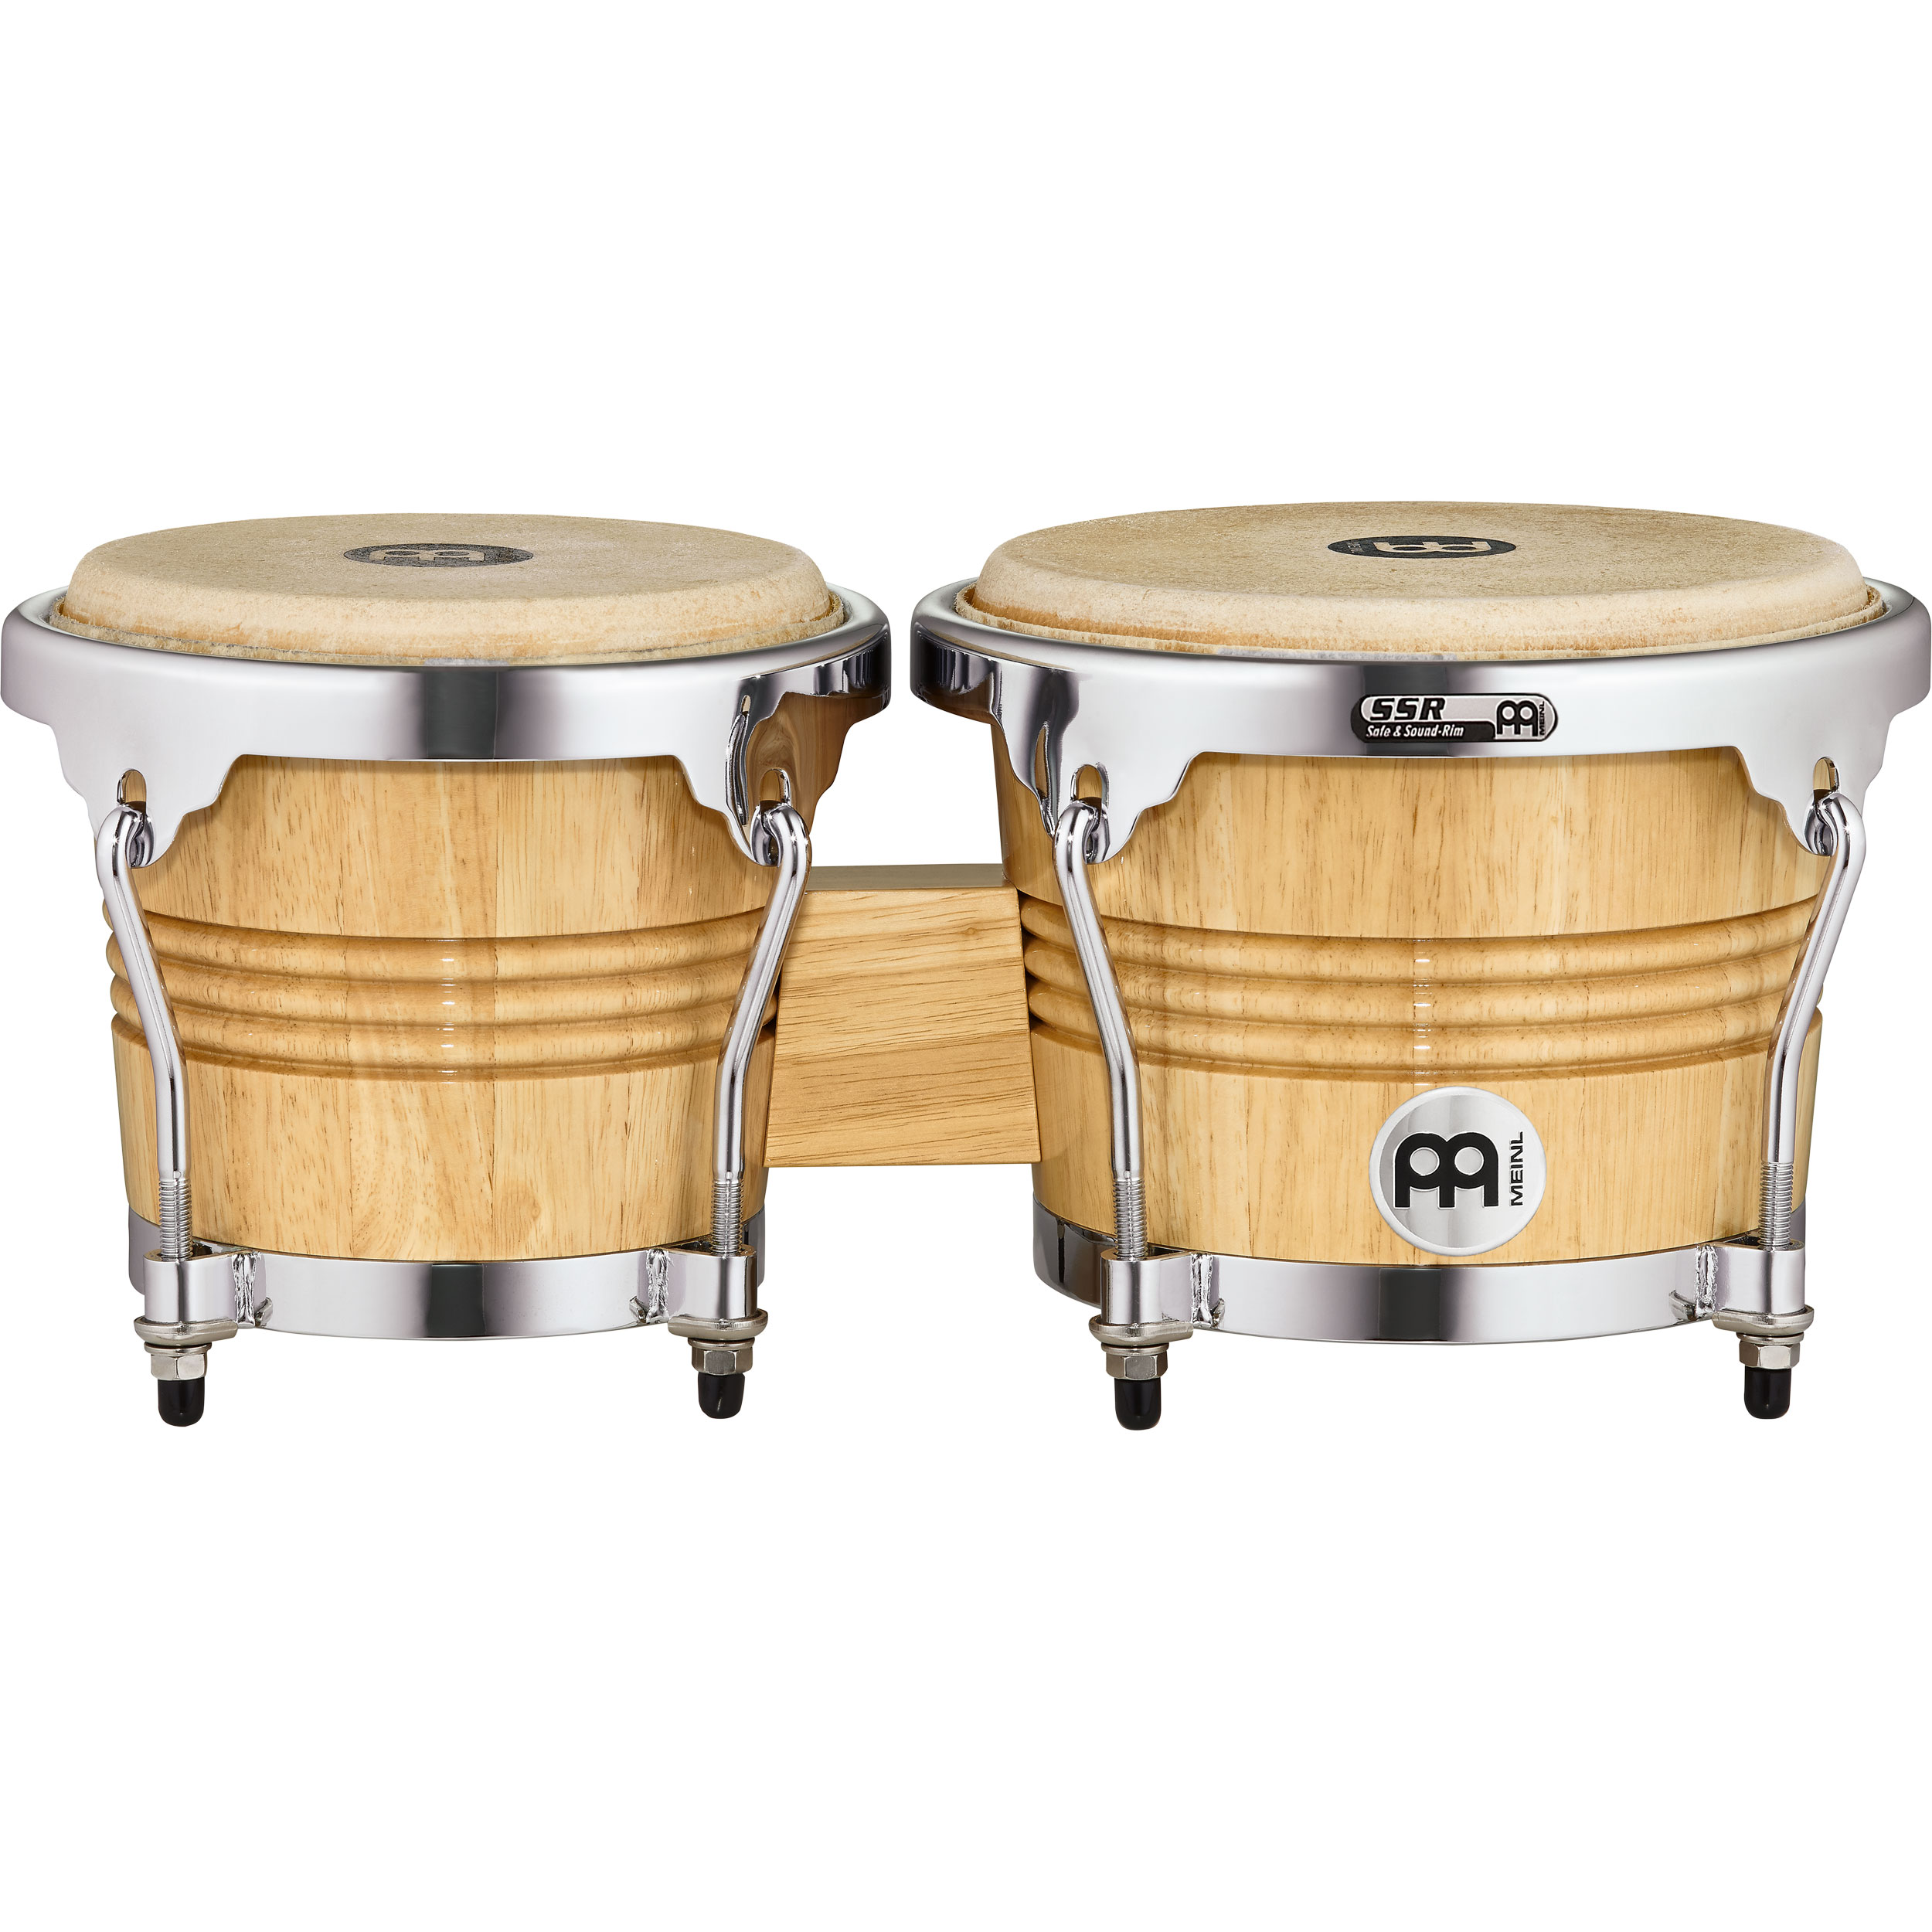 "Meinl 6.75"" & 8"" Wood Bongos with Chrome Hardware"